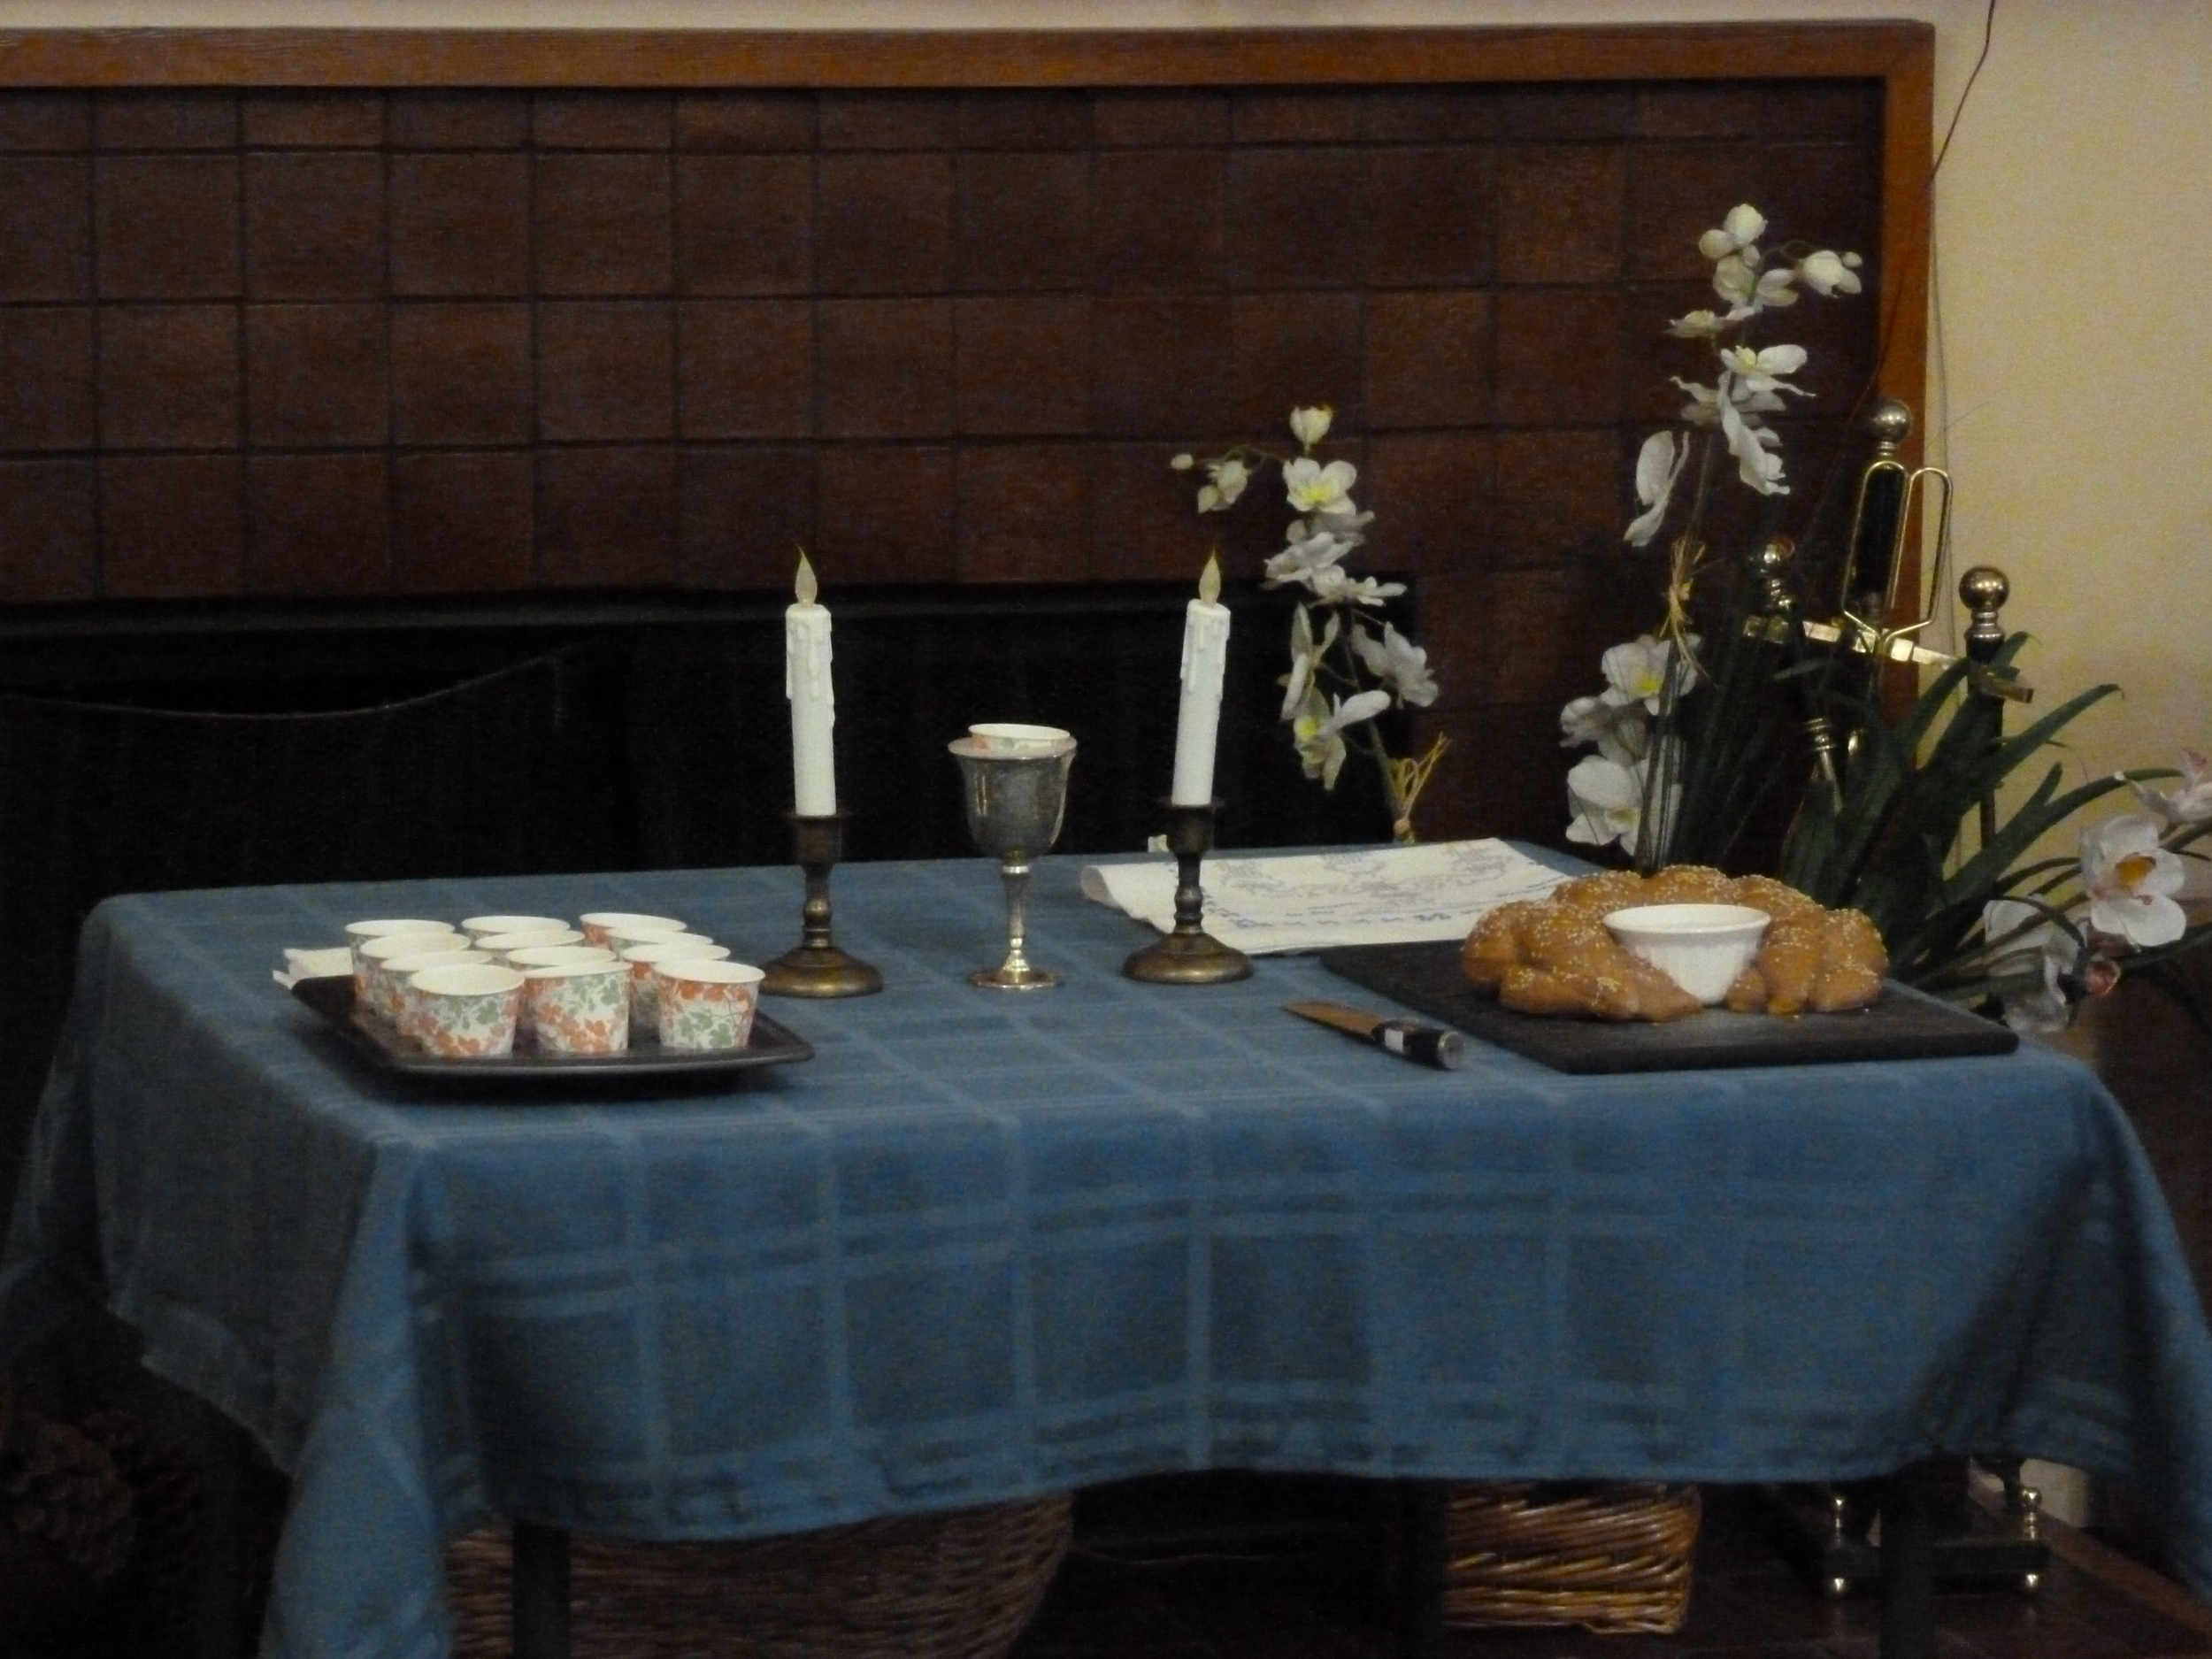 Challah, Kiddush cup, and candles.